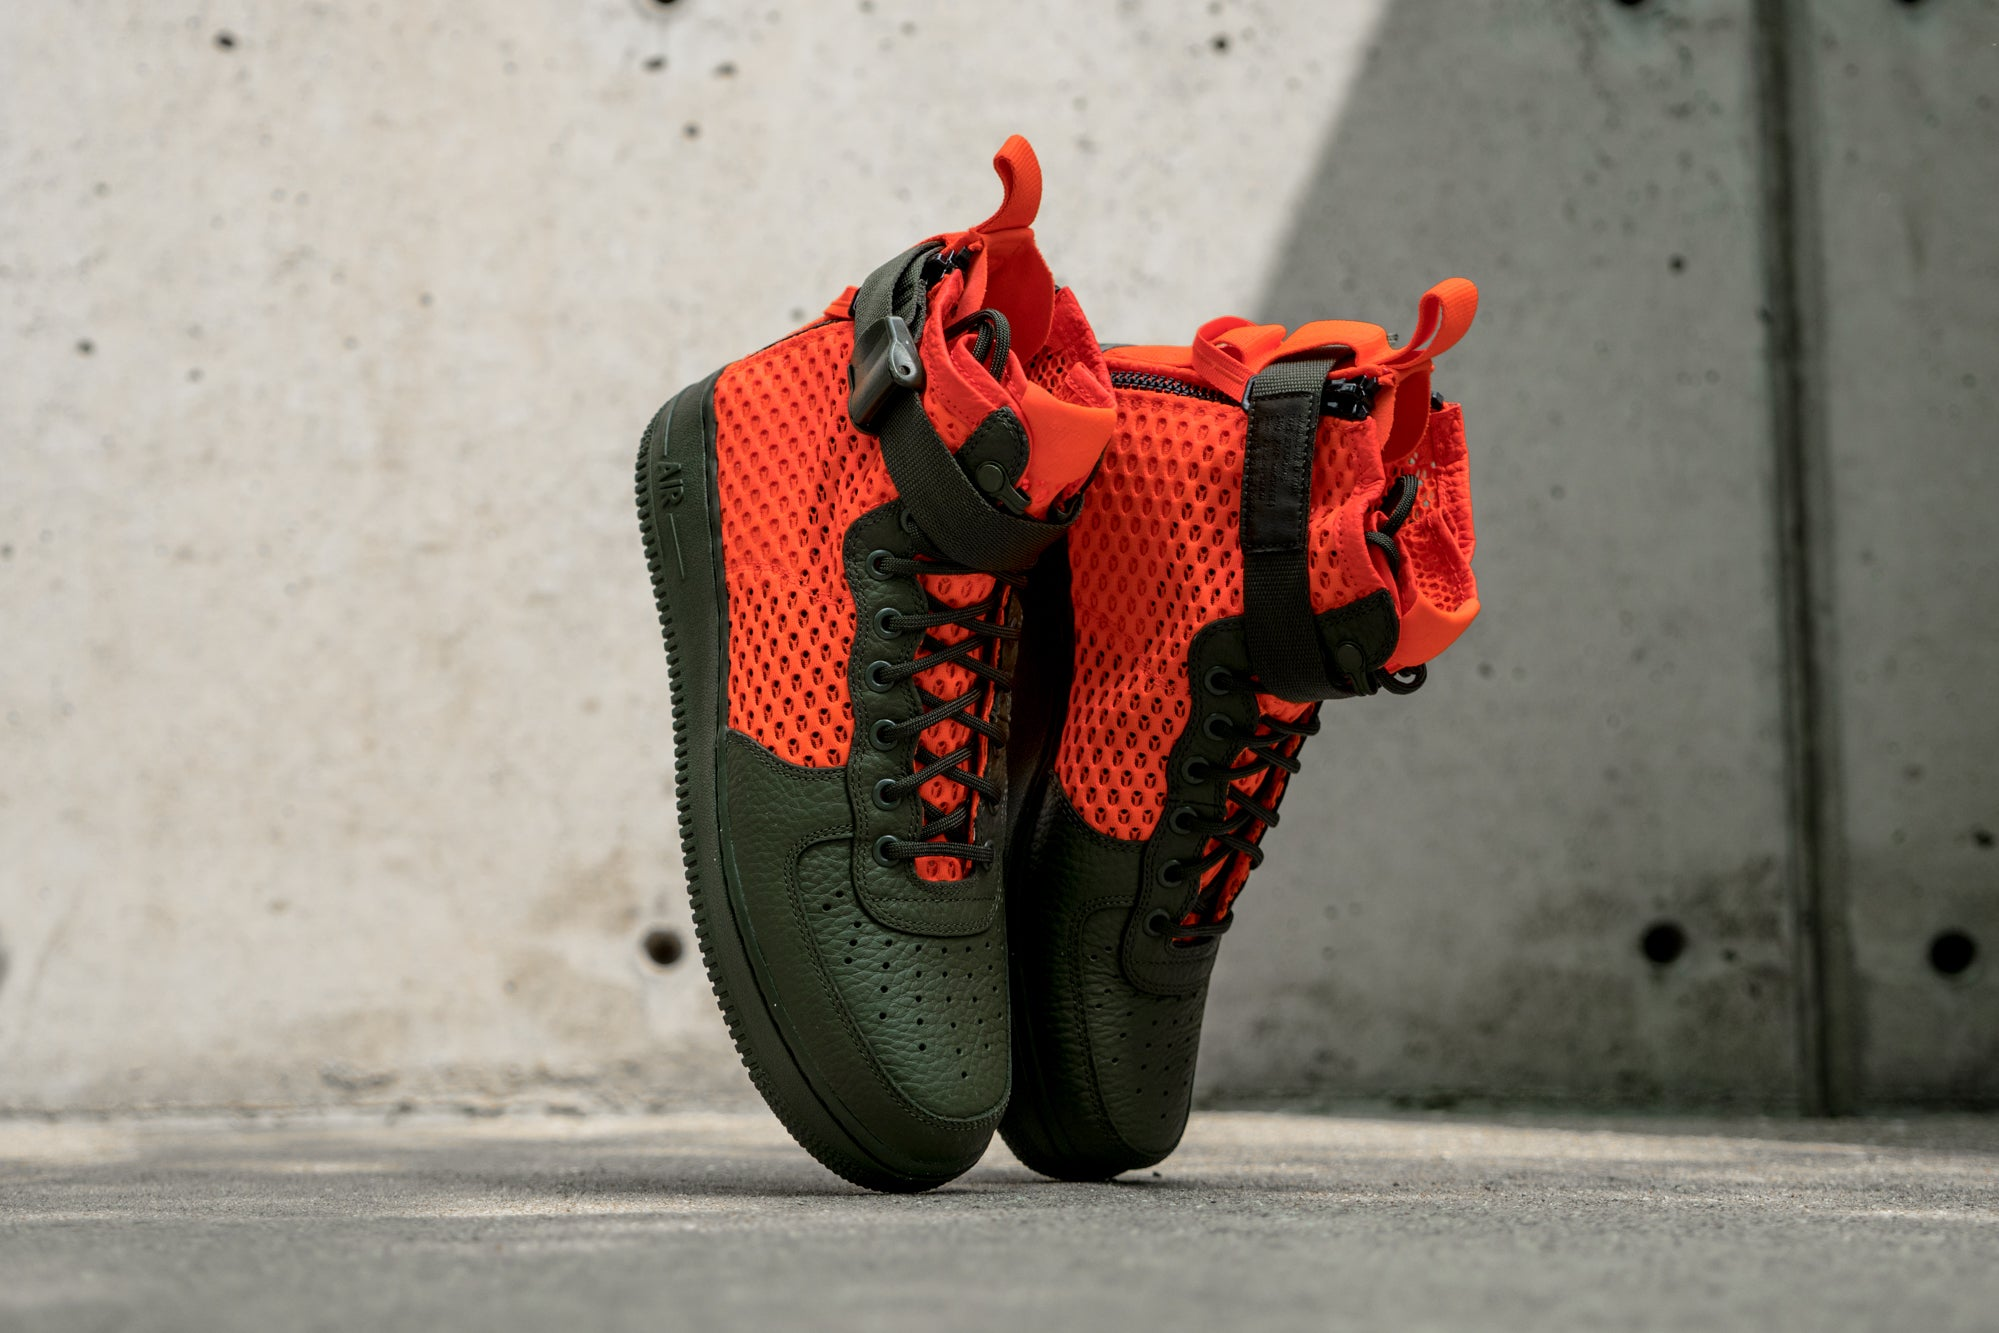 Nike Special Field Air Force 1 Mid QS in Cargo Khaki/Total Crimson